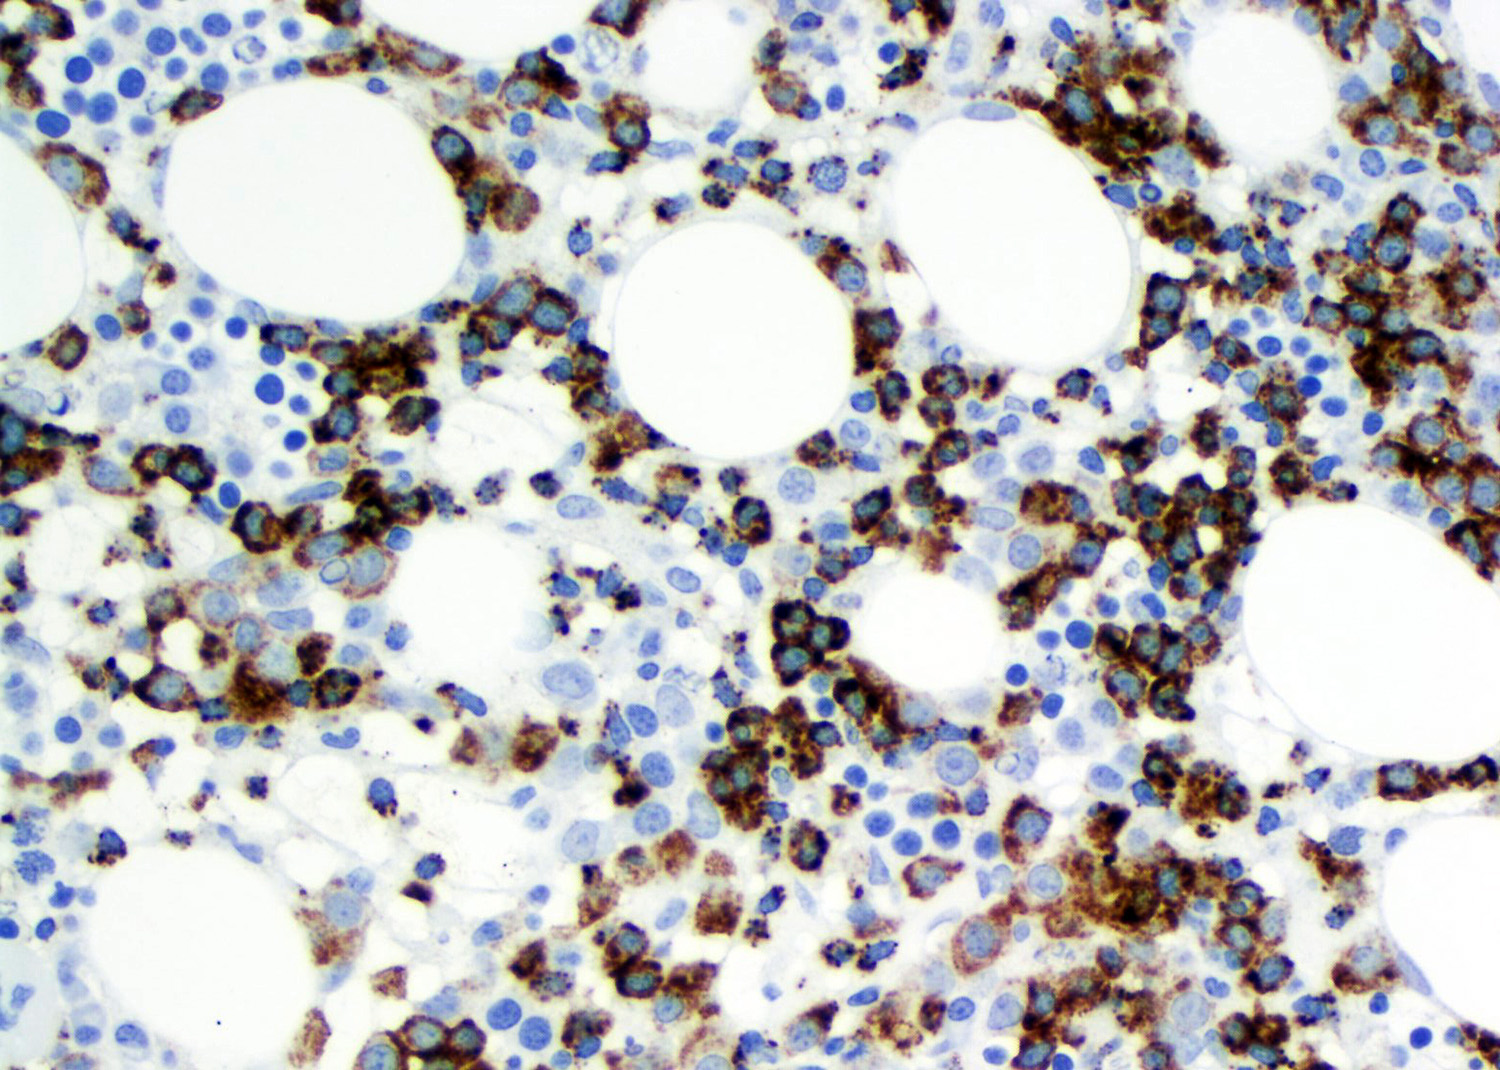 TIA1 in T cell LGL